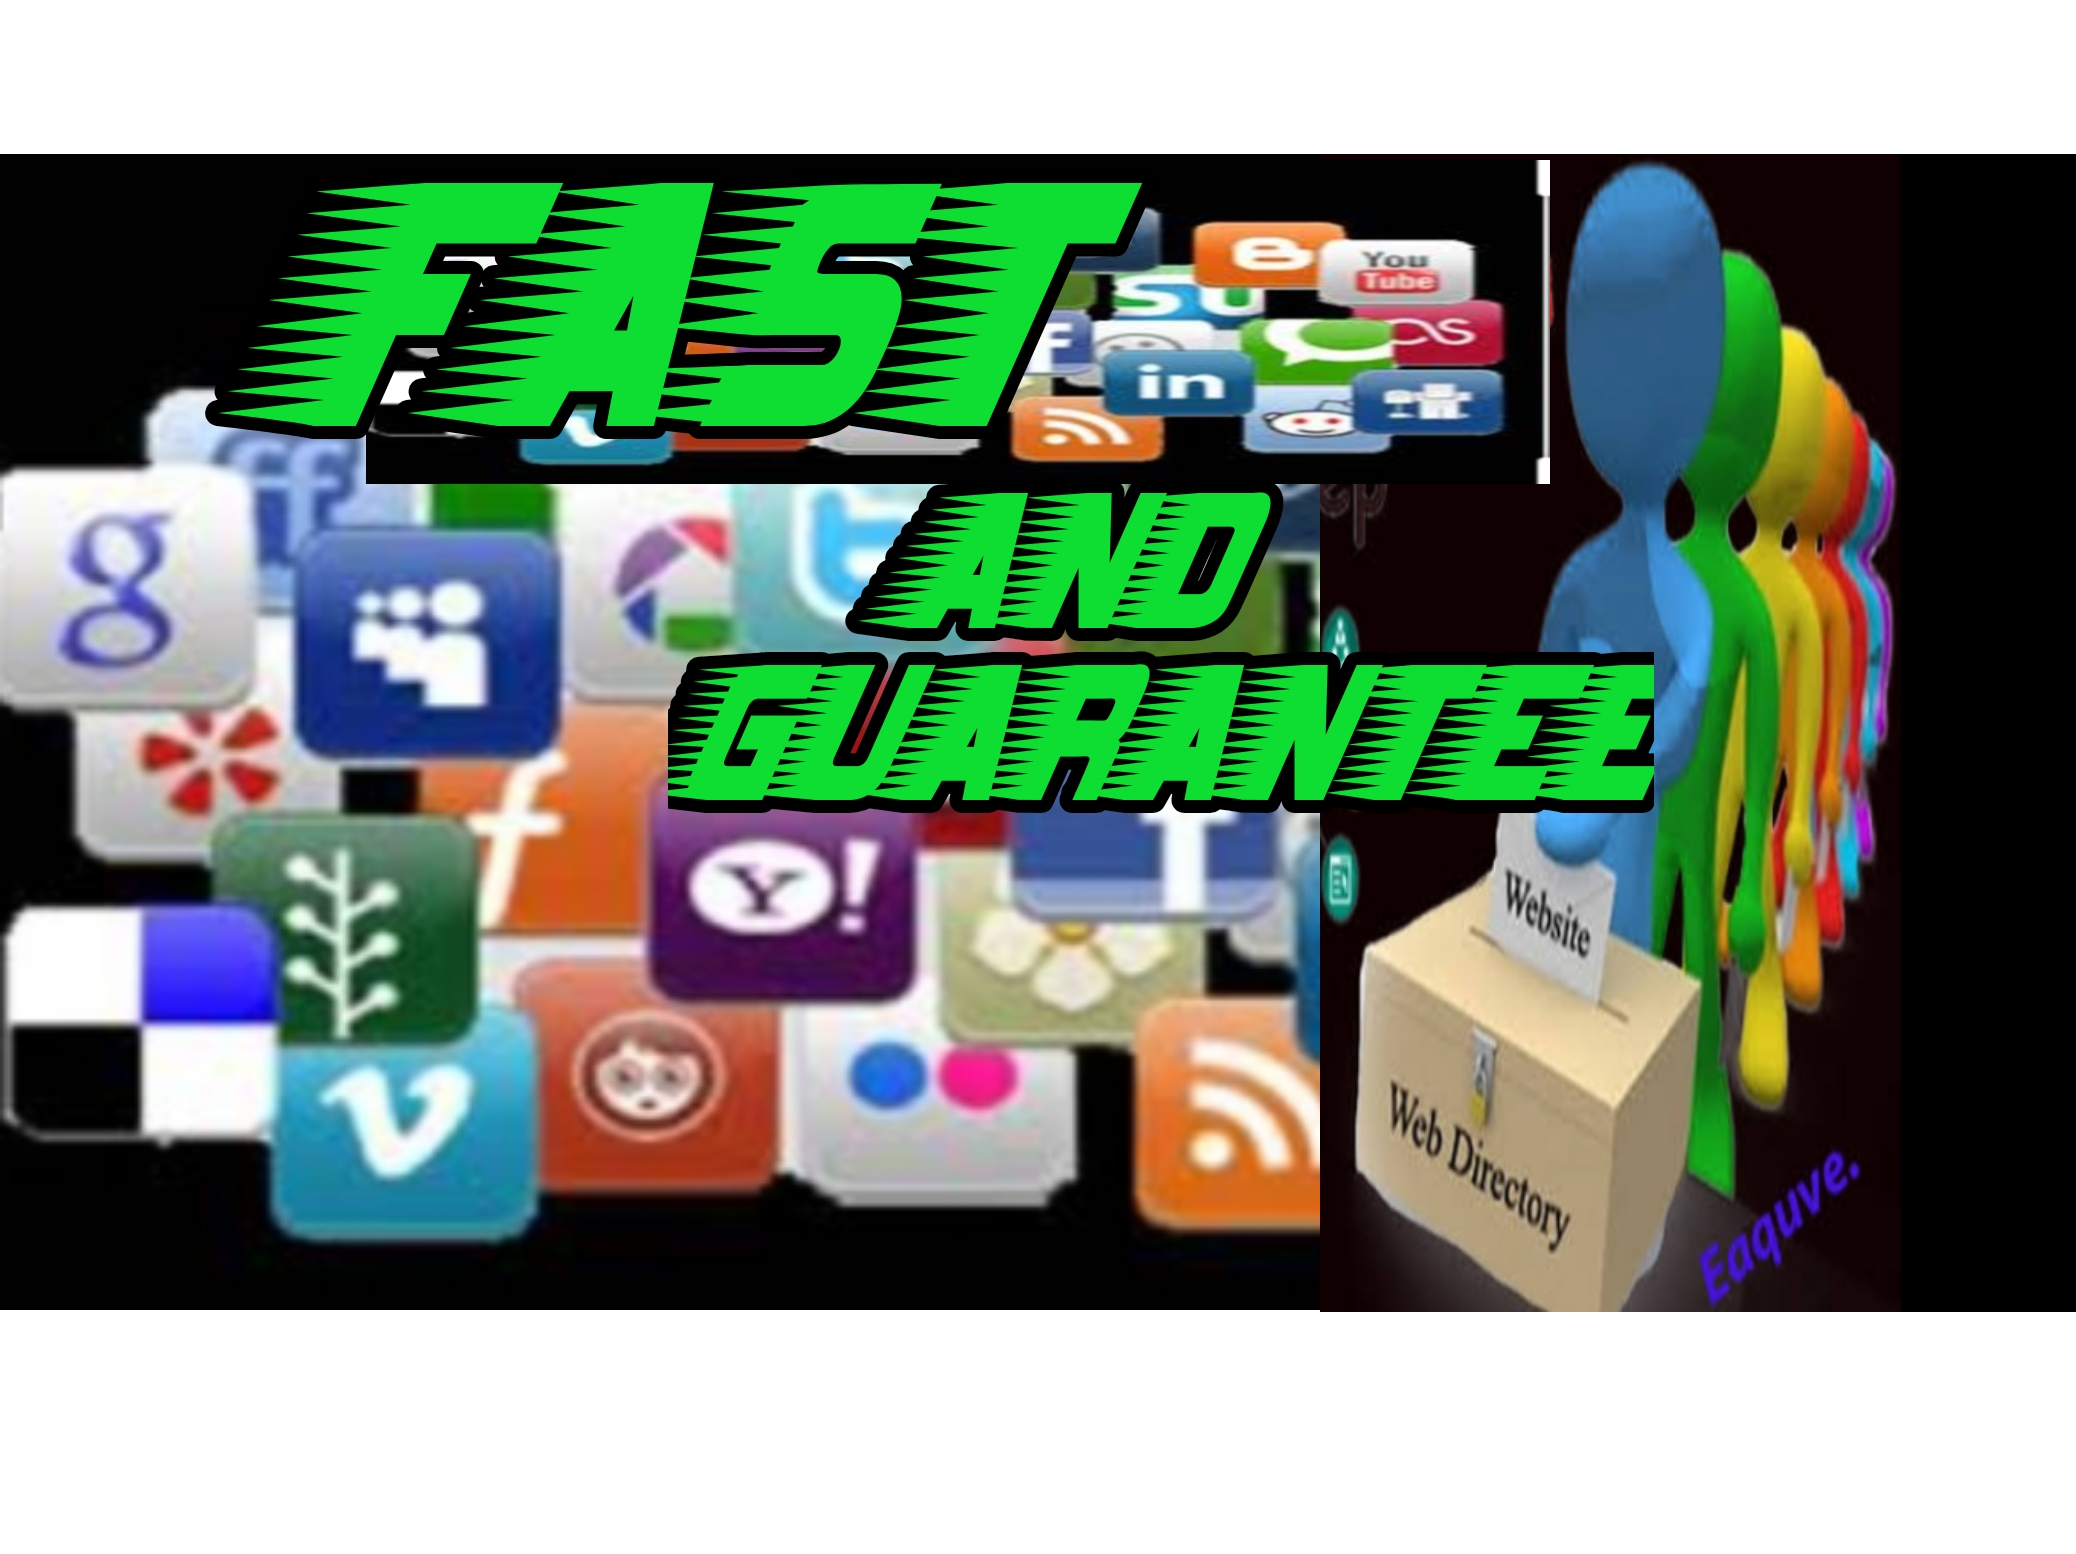 Fast and guarantee service.. Great mixture of quality links..